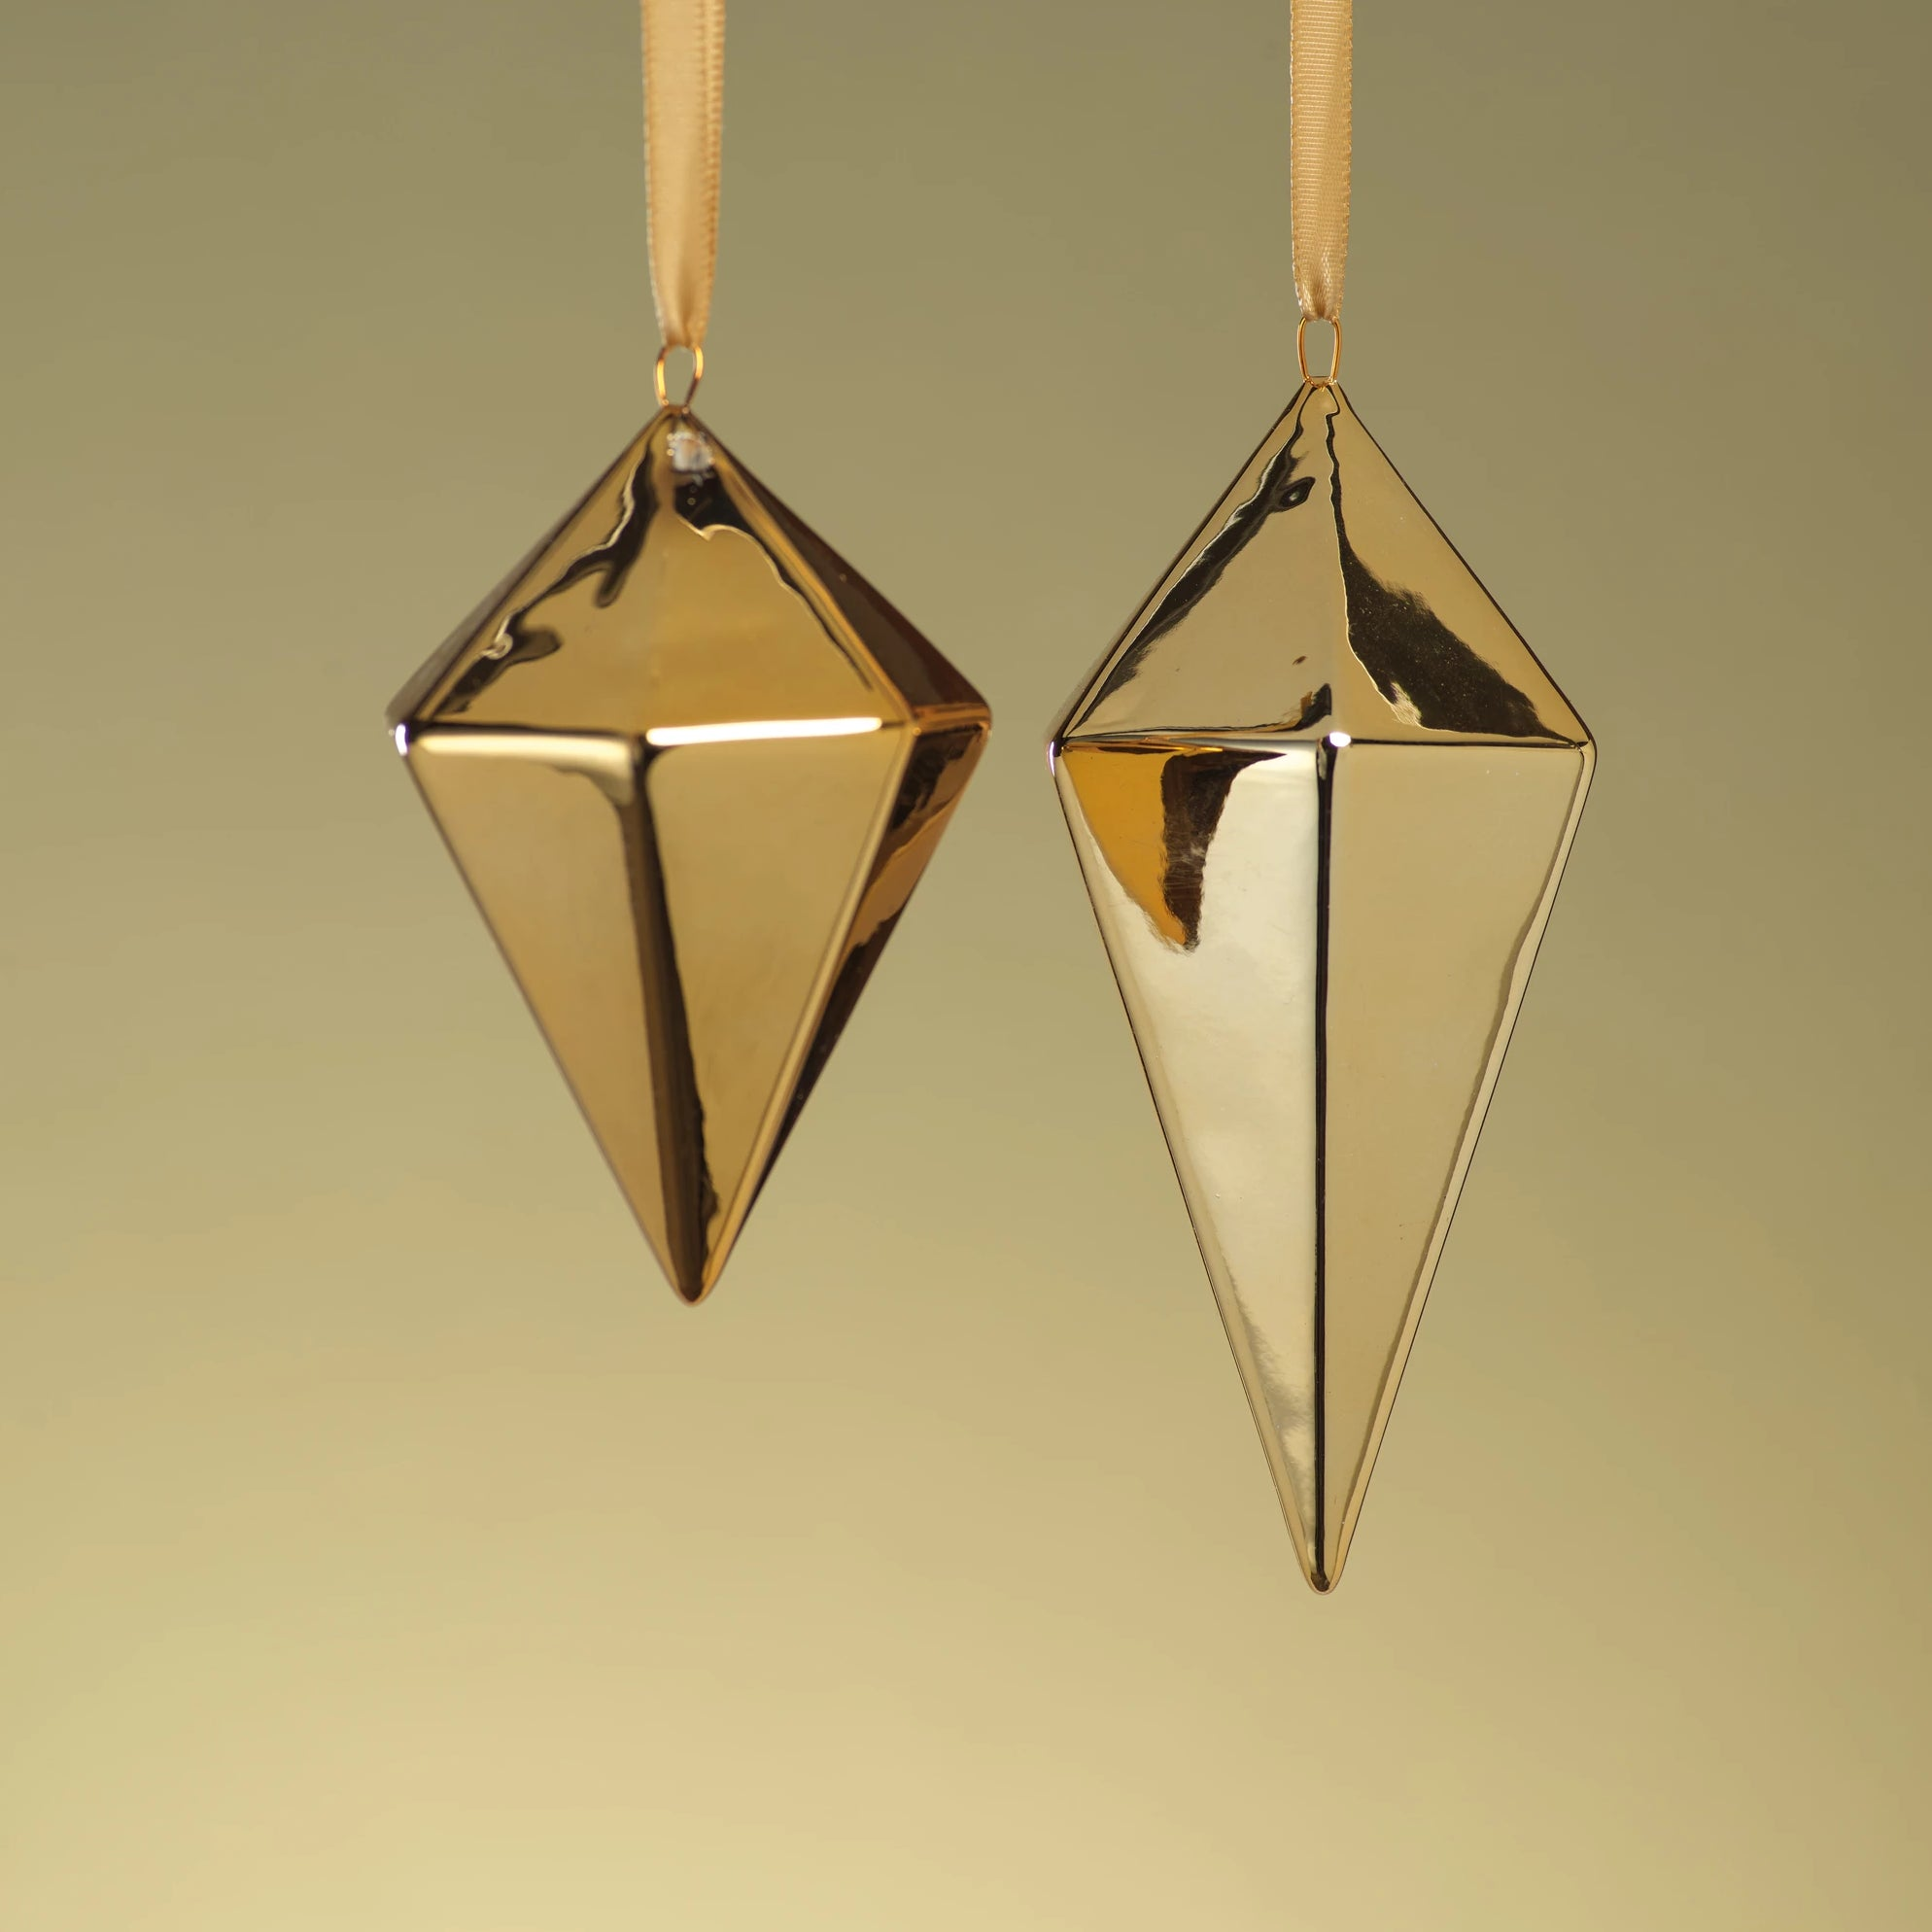 Diamond Ceramic Ornament - Gold - CARLYLE AVENUE